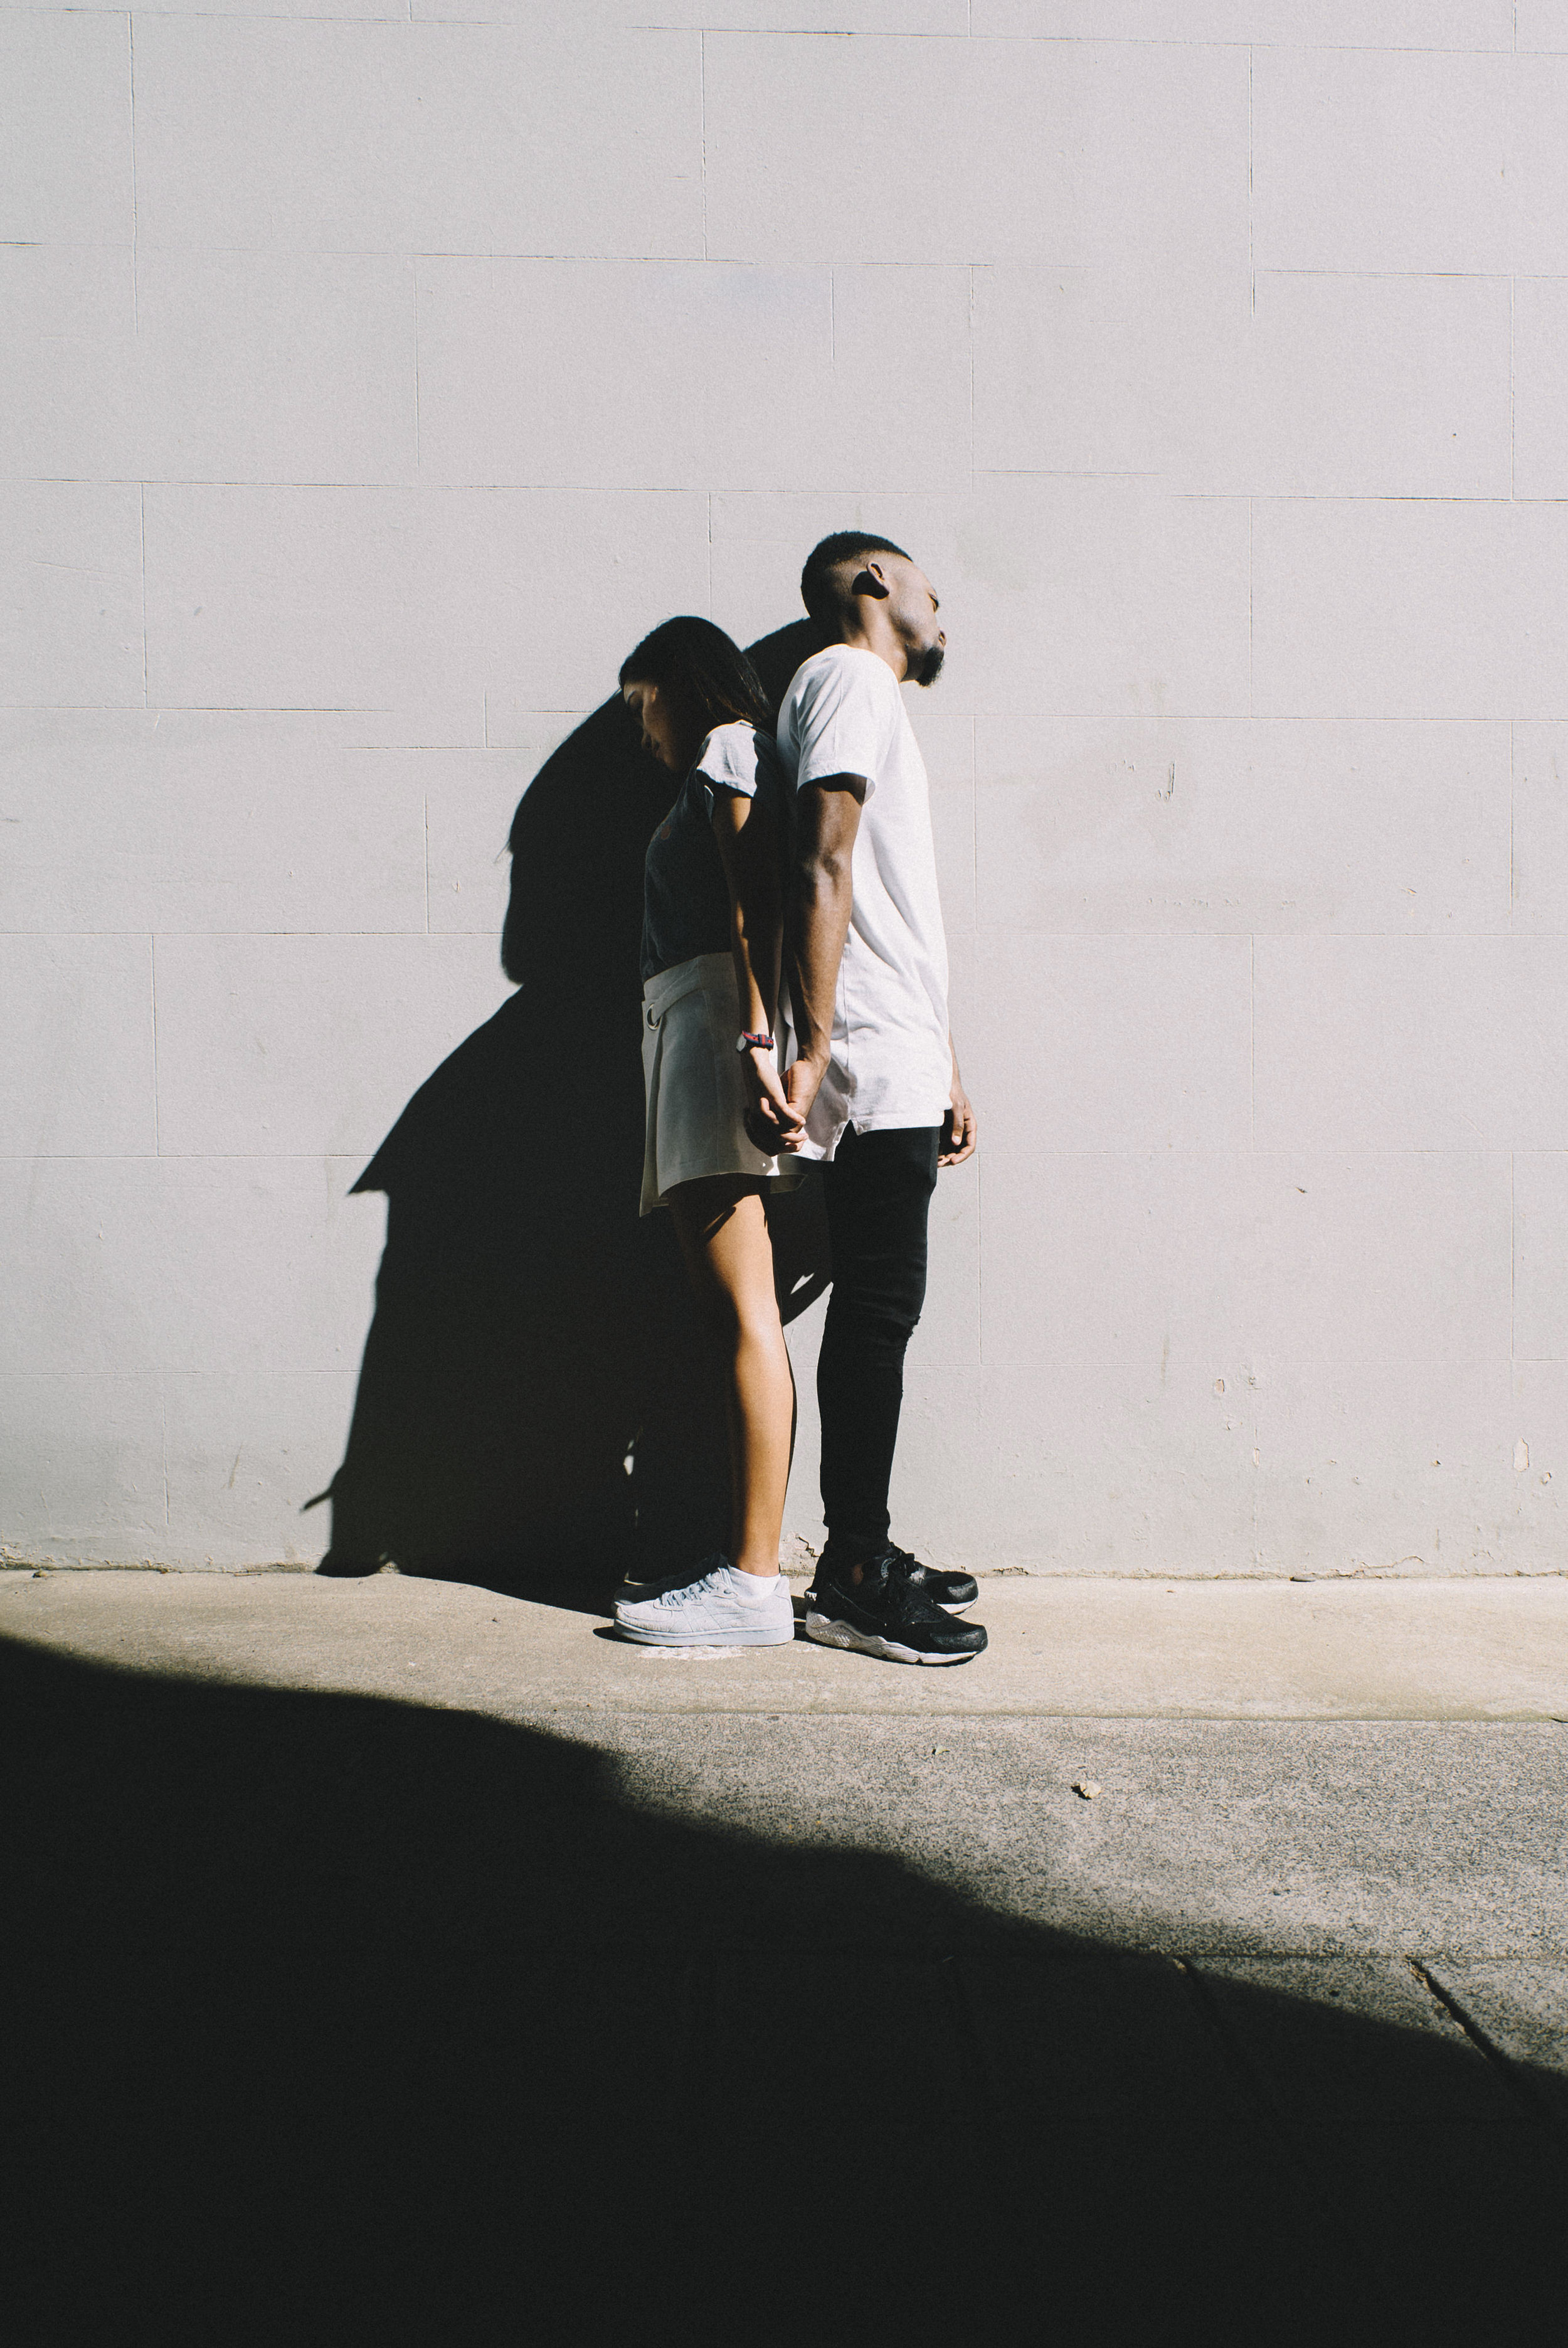 A couple in a relationship facing away from each other.